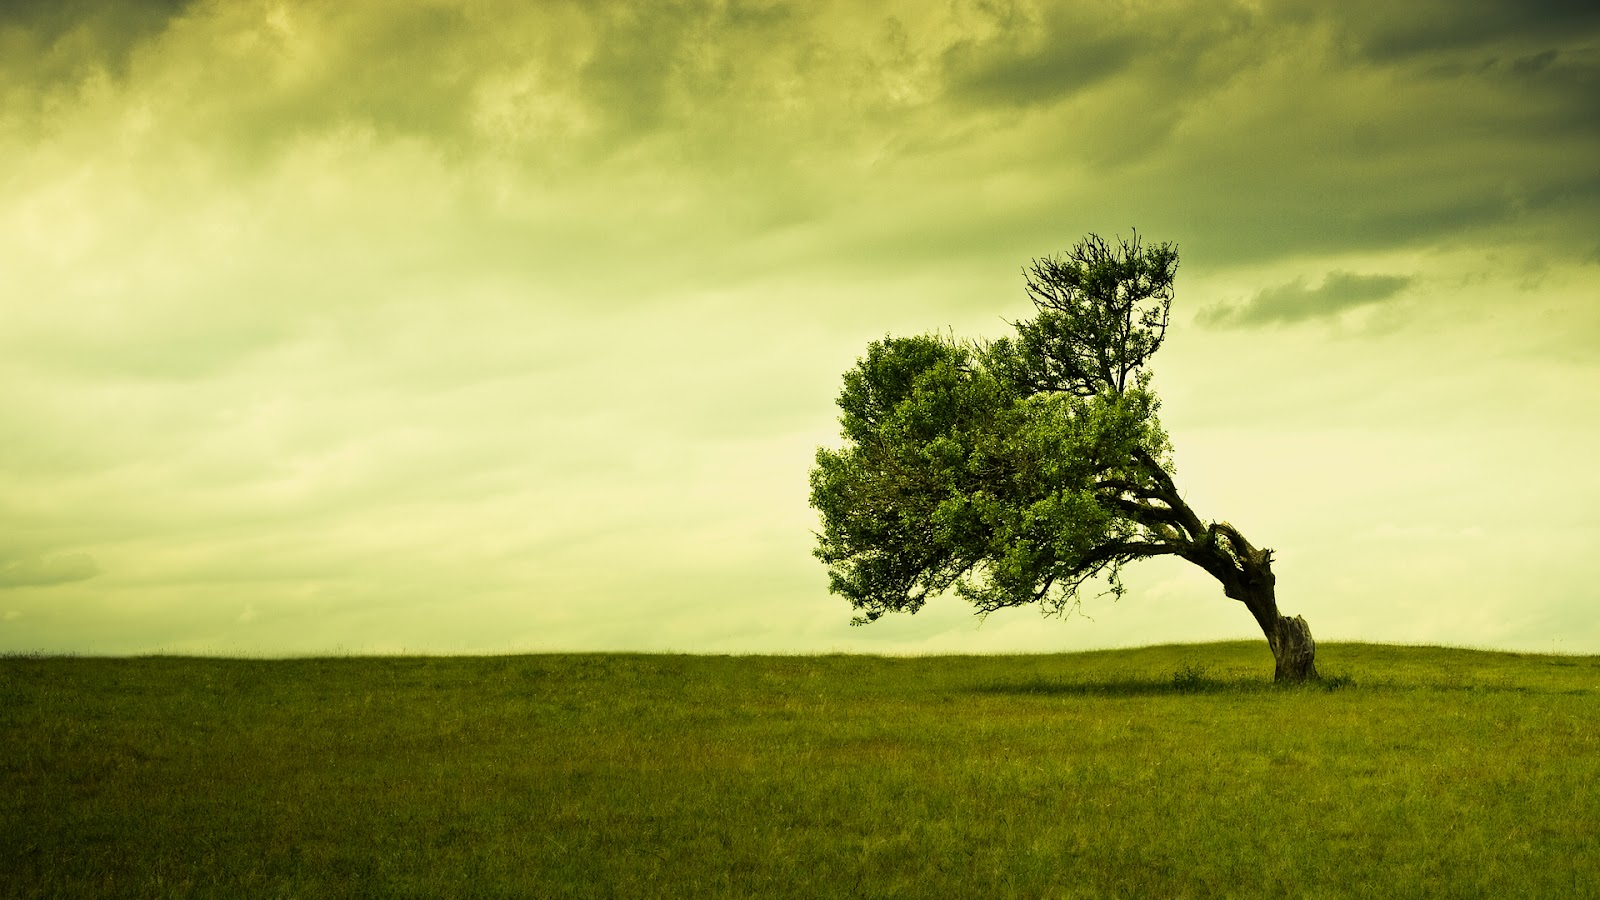 HD Tree Background Wallpapers Free Green Trees Photos Photography